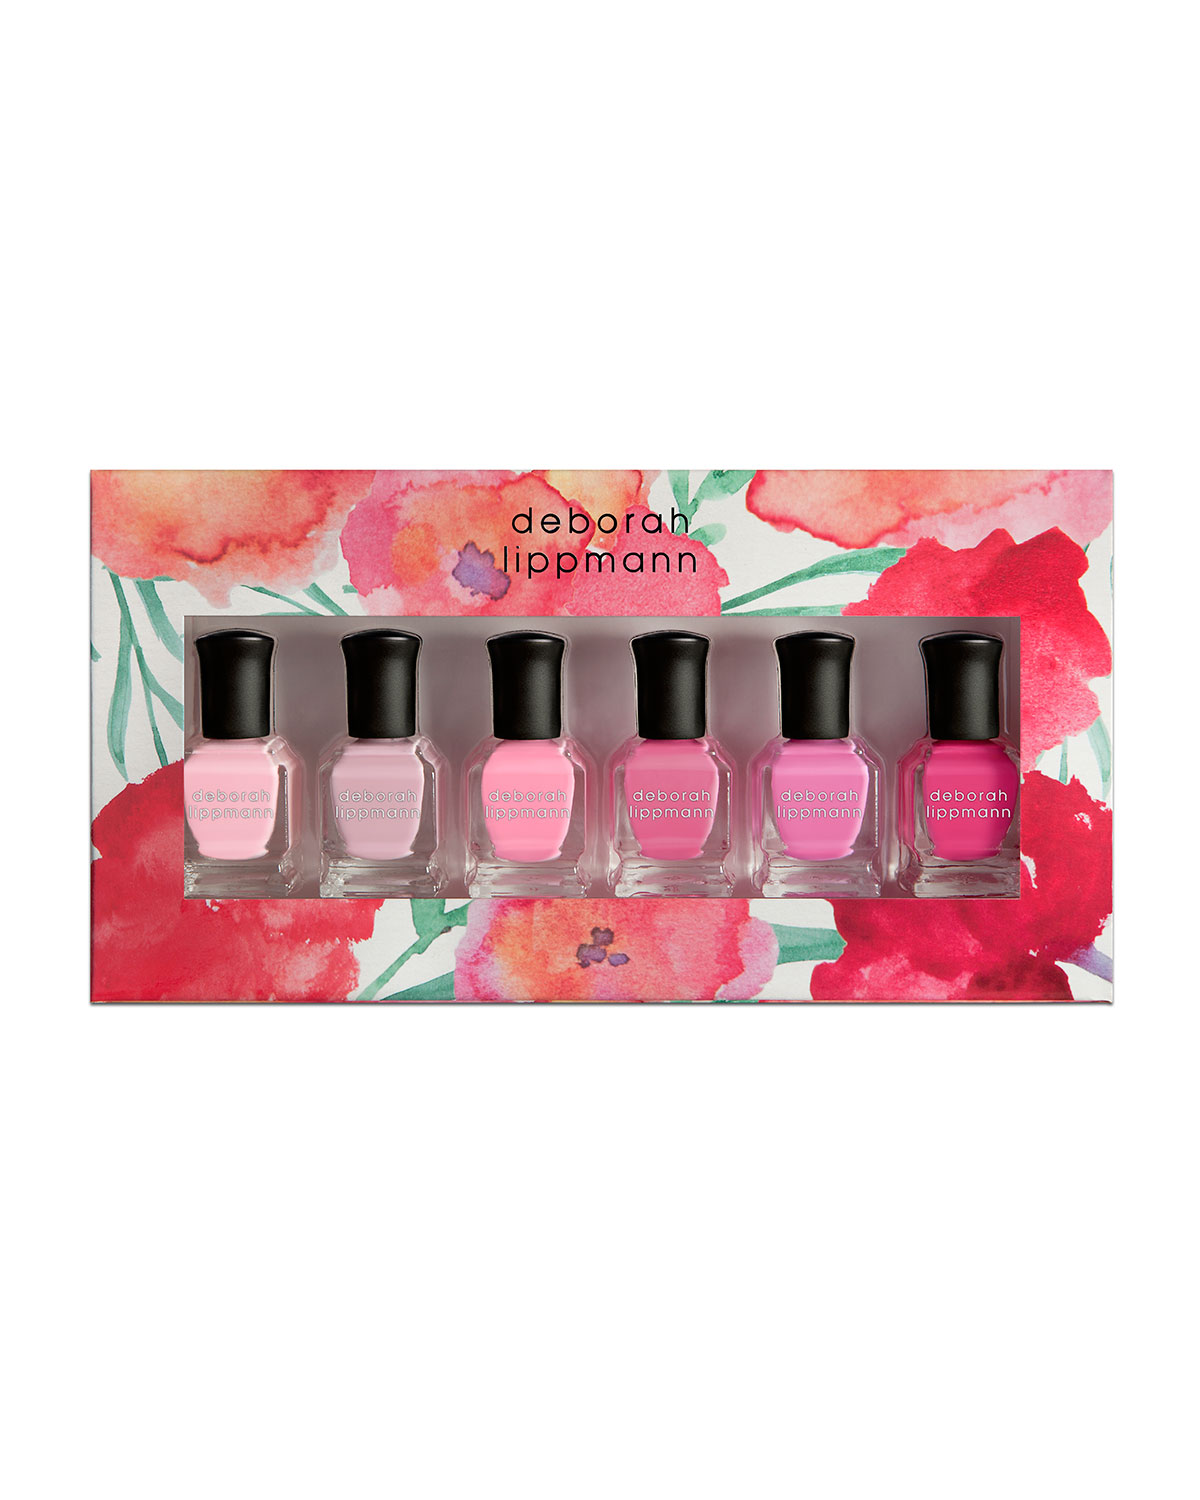 Pretty in Pink Fashion-Size Nail Polish Set, 8 mL each ($72 VALUE)